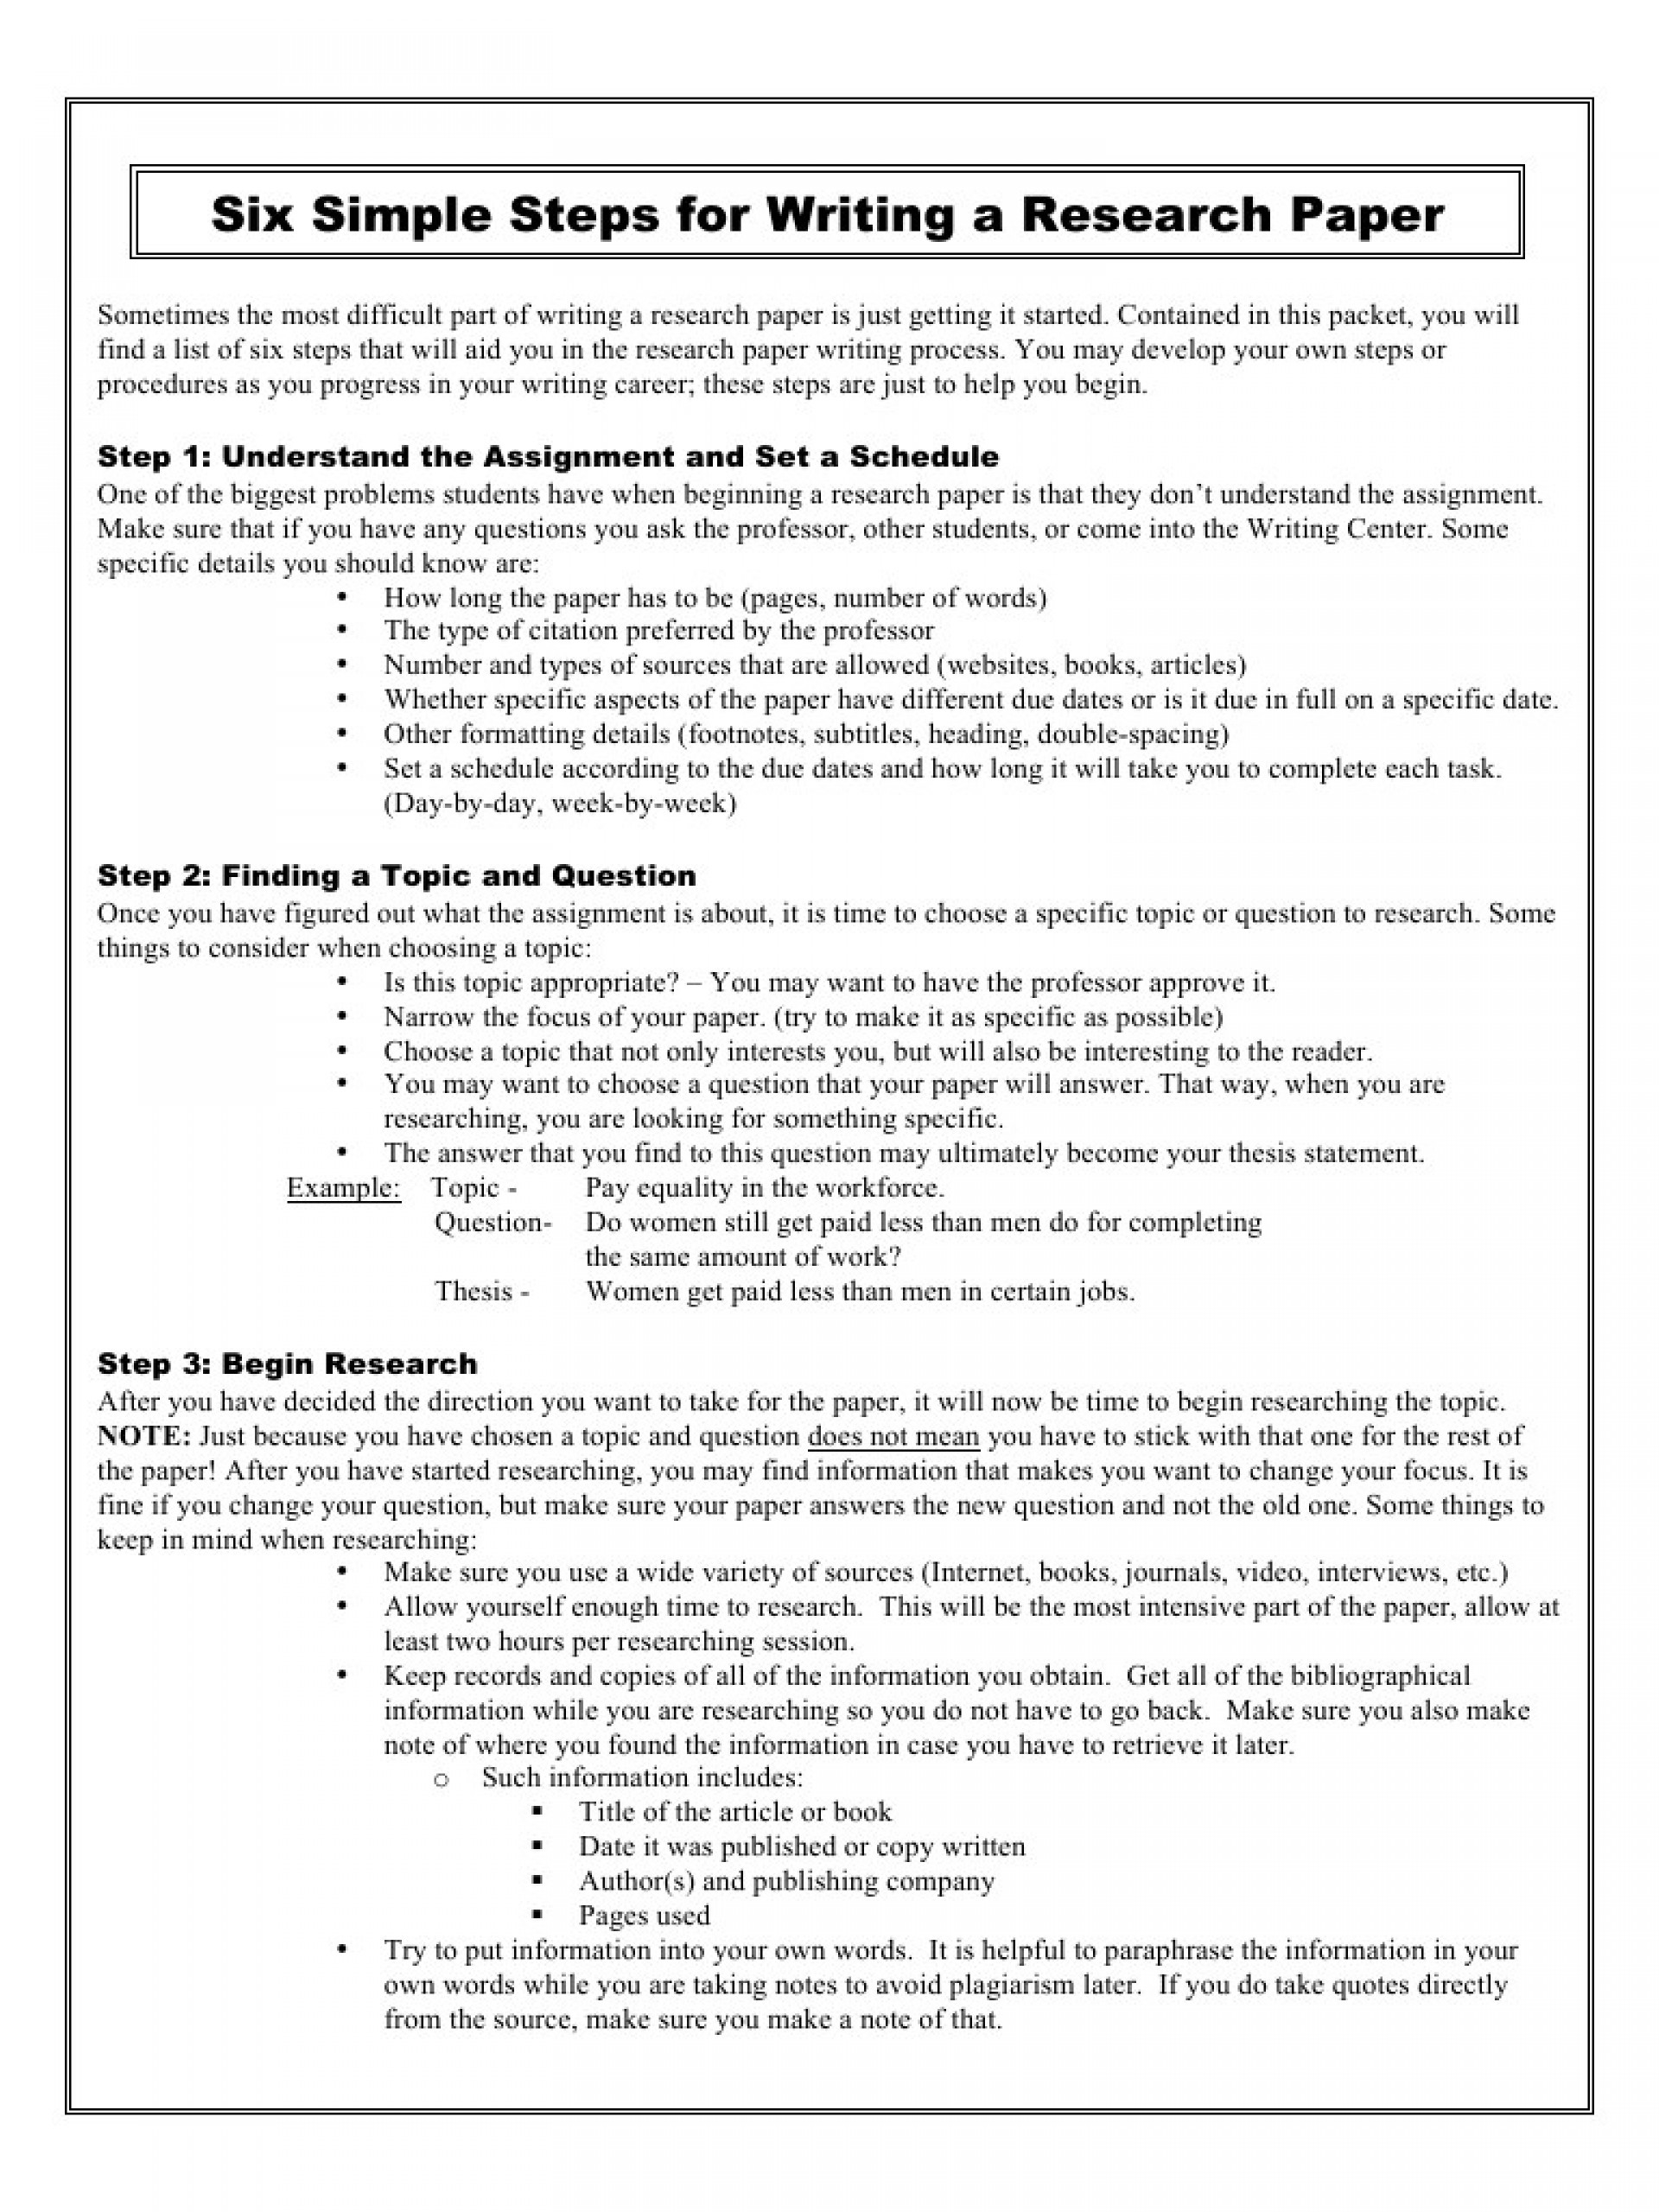 004 Preview Simple Steps For Writing Research Paper Example Of Fantastic A Pdf 1920